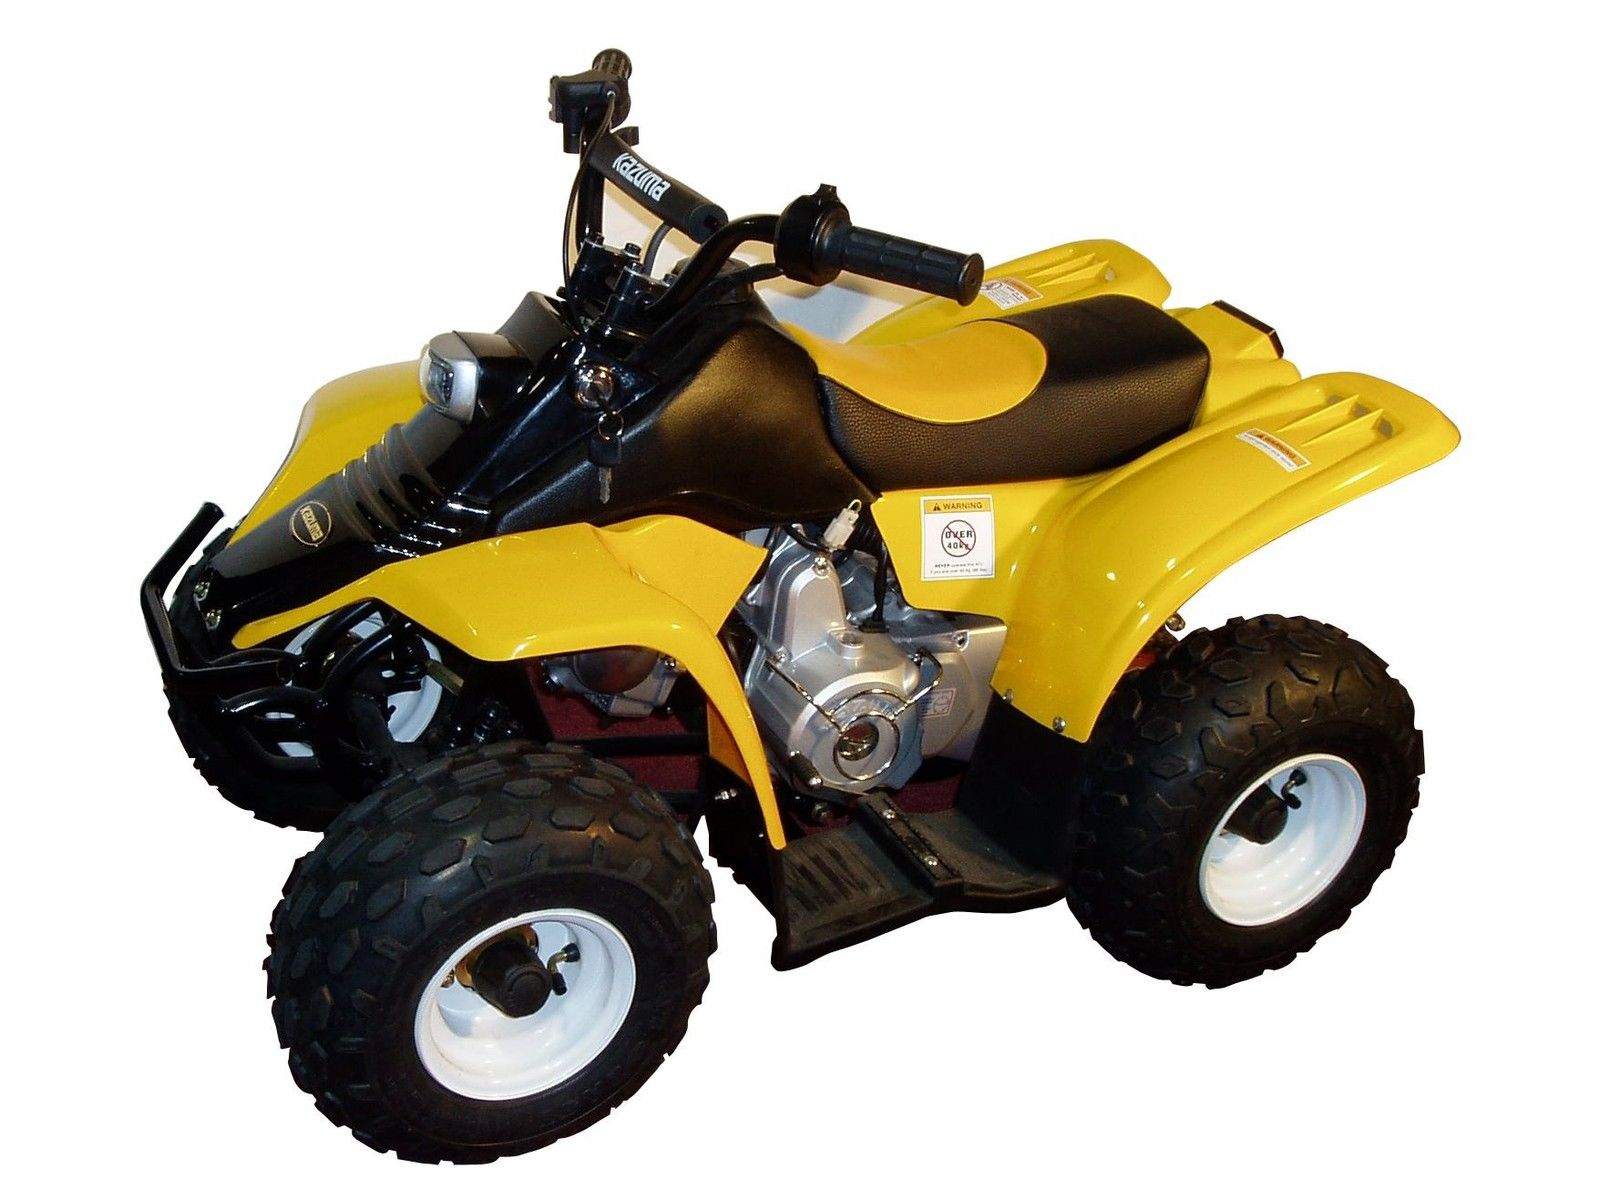 Kazuma 50 Atv Wiring Diagram - Wiring Diagrams List on